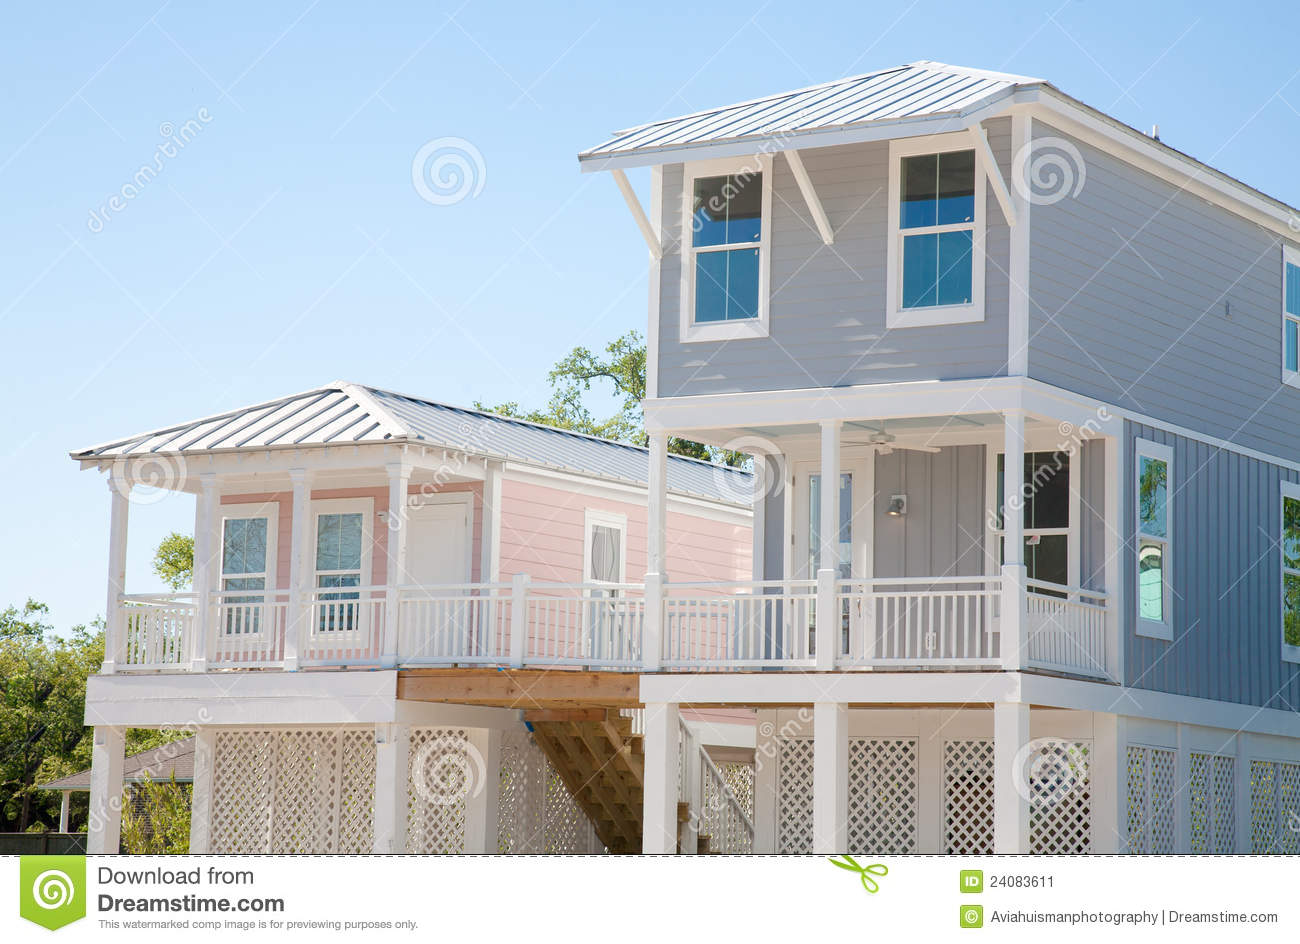 New homes modern elevated homes stock image image 24083611 - Elevate the sustainable house ...